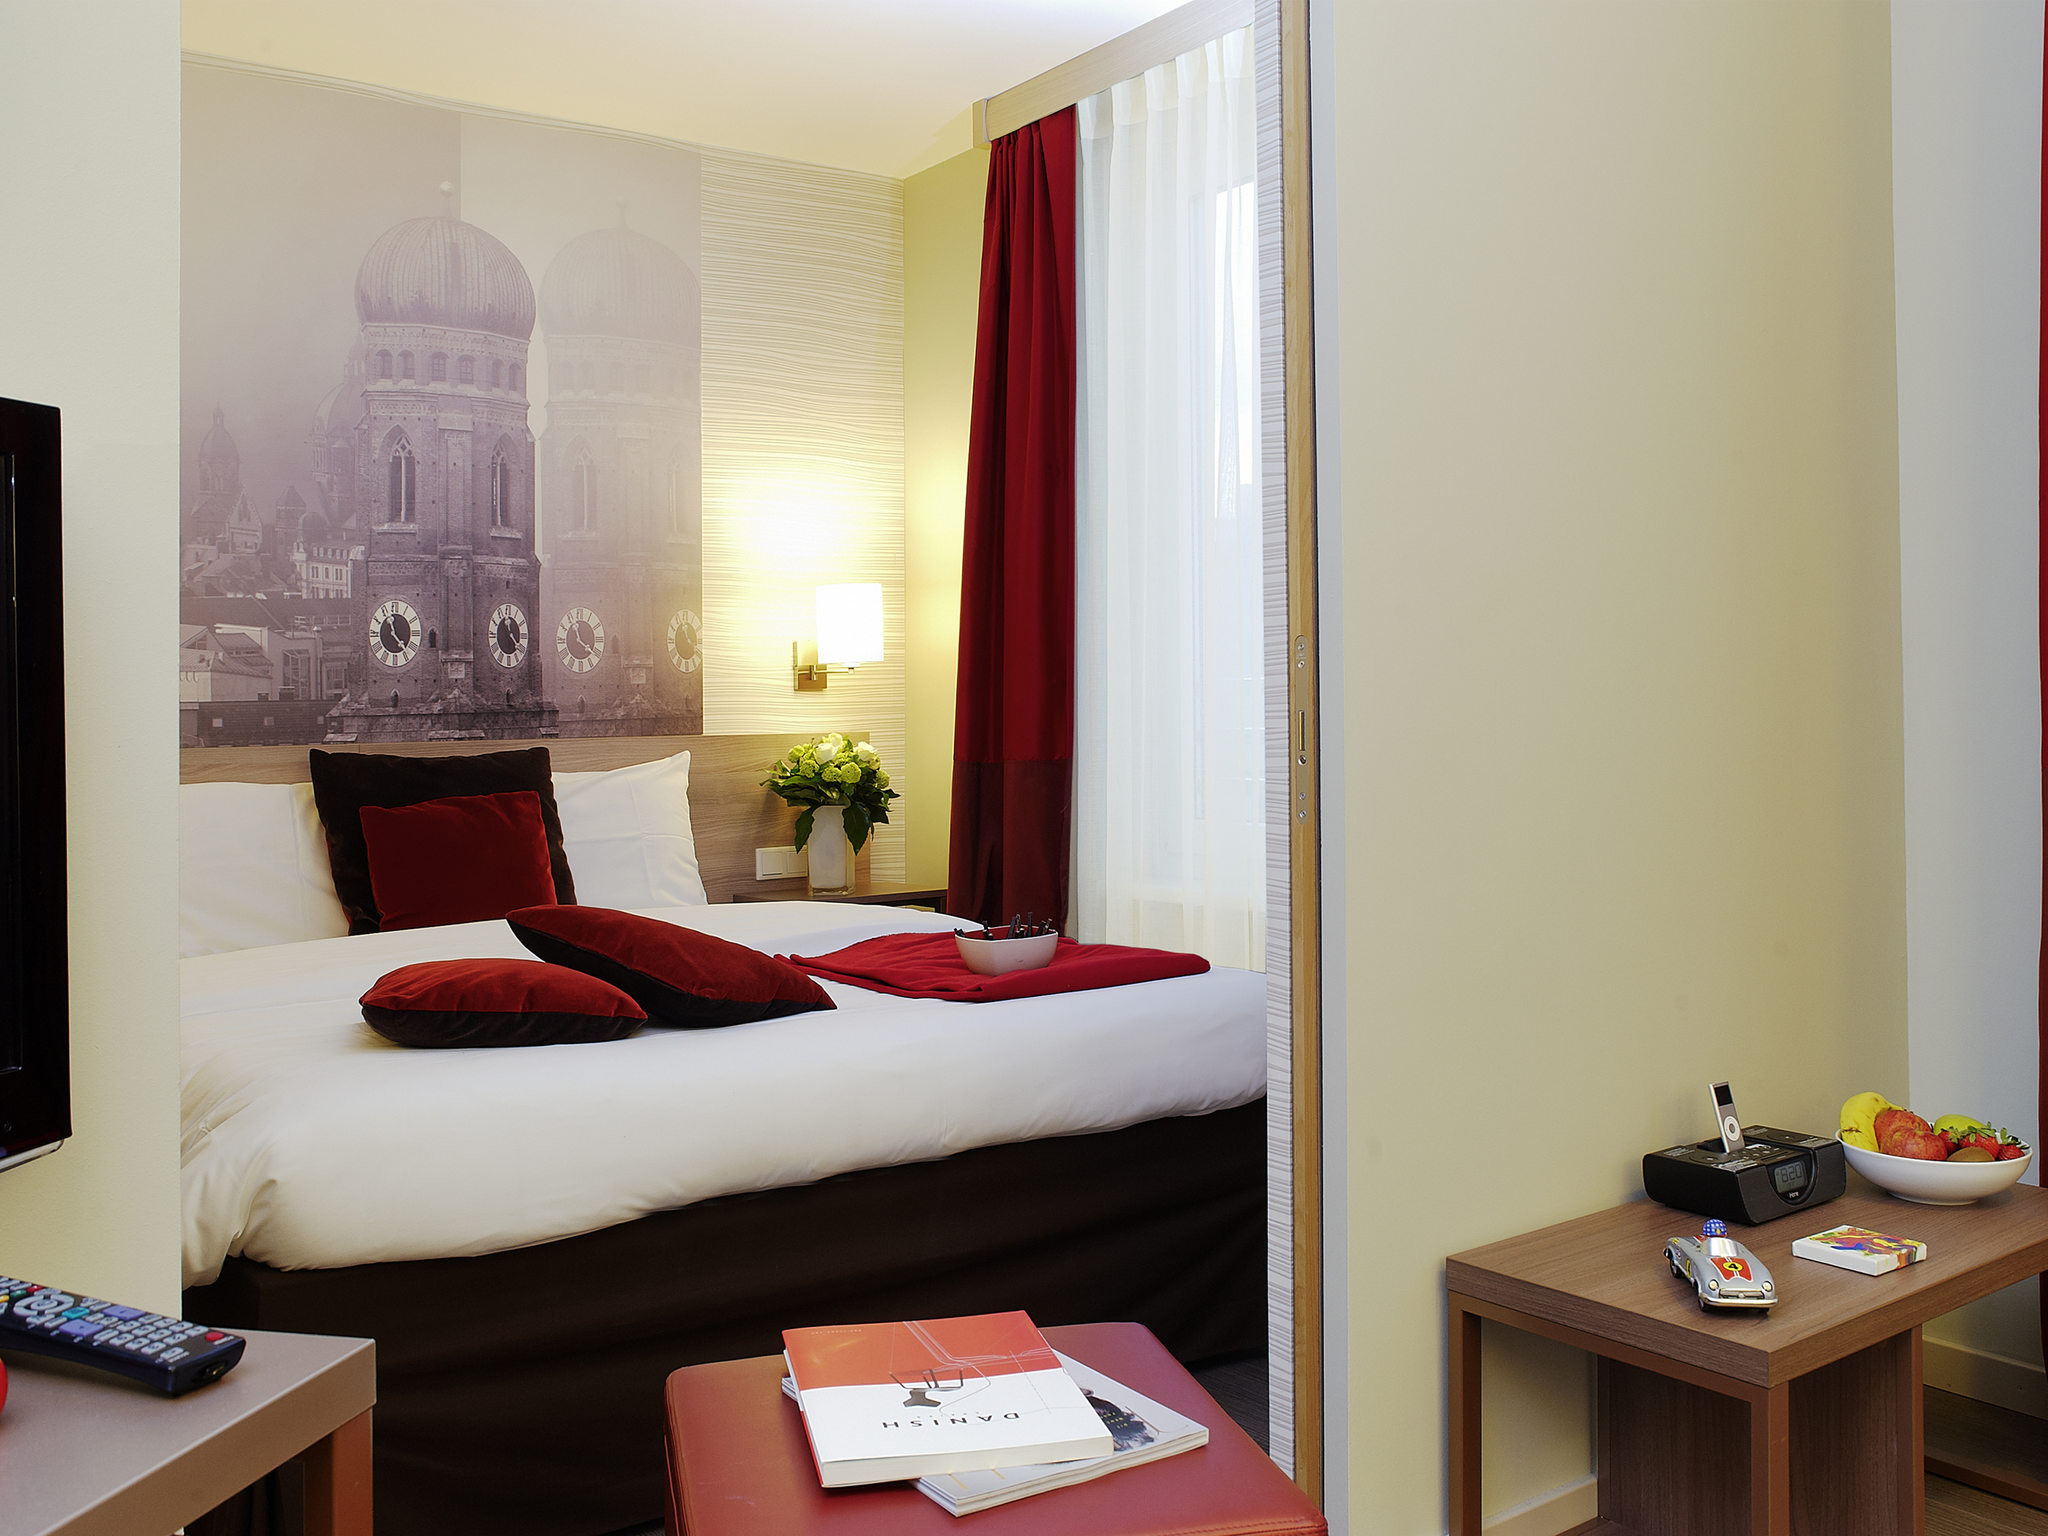 Aparthotel adagio munich city book now fitness room for Adagio accor hotel